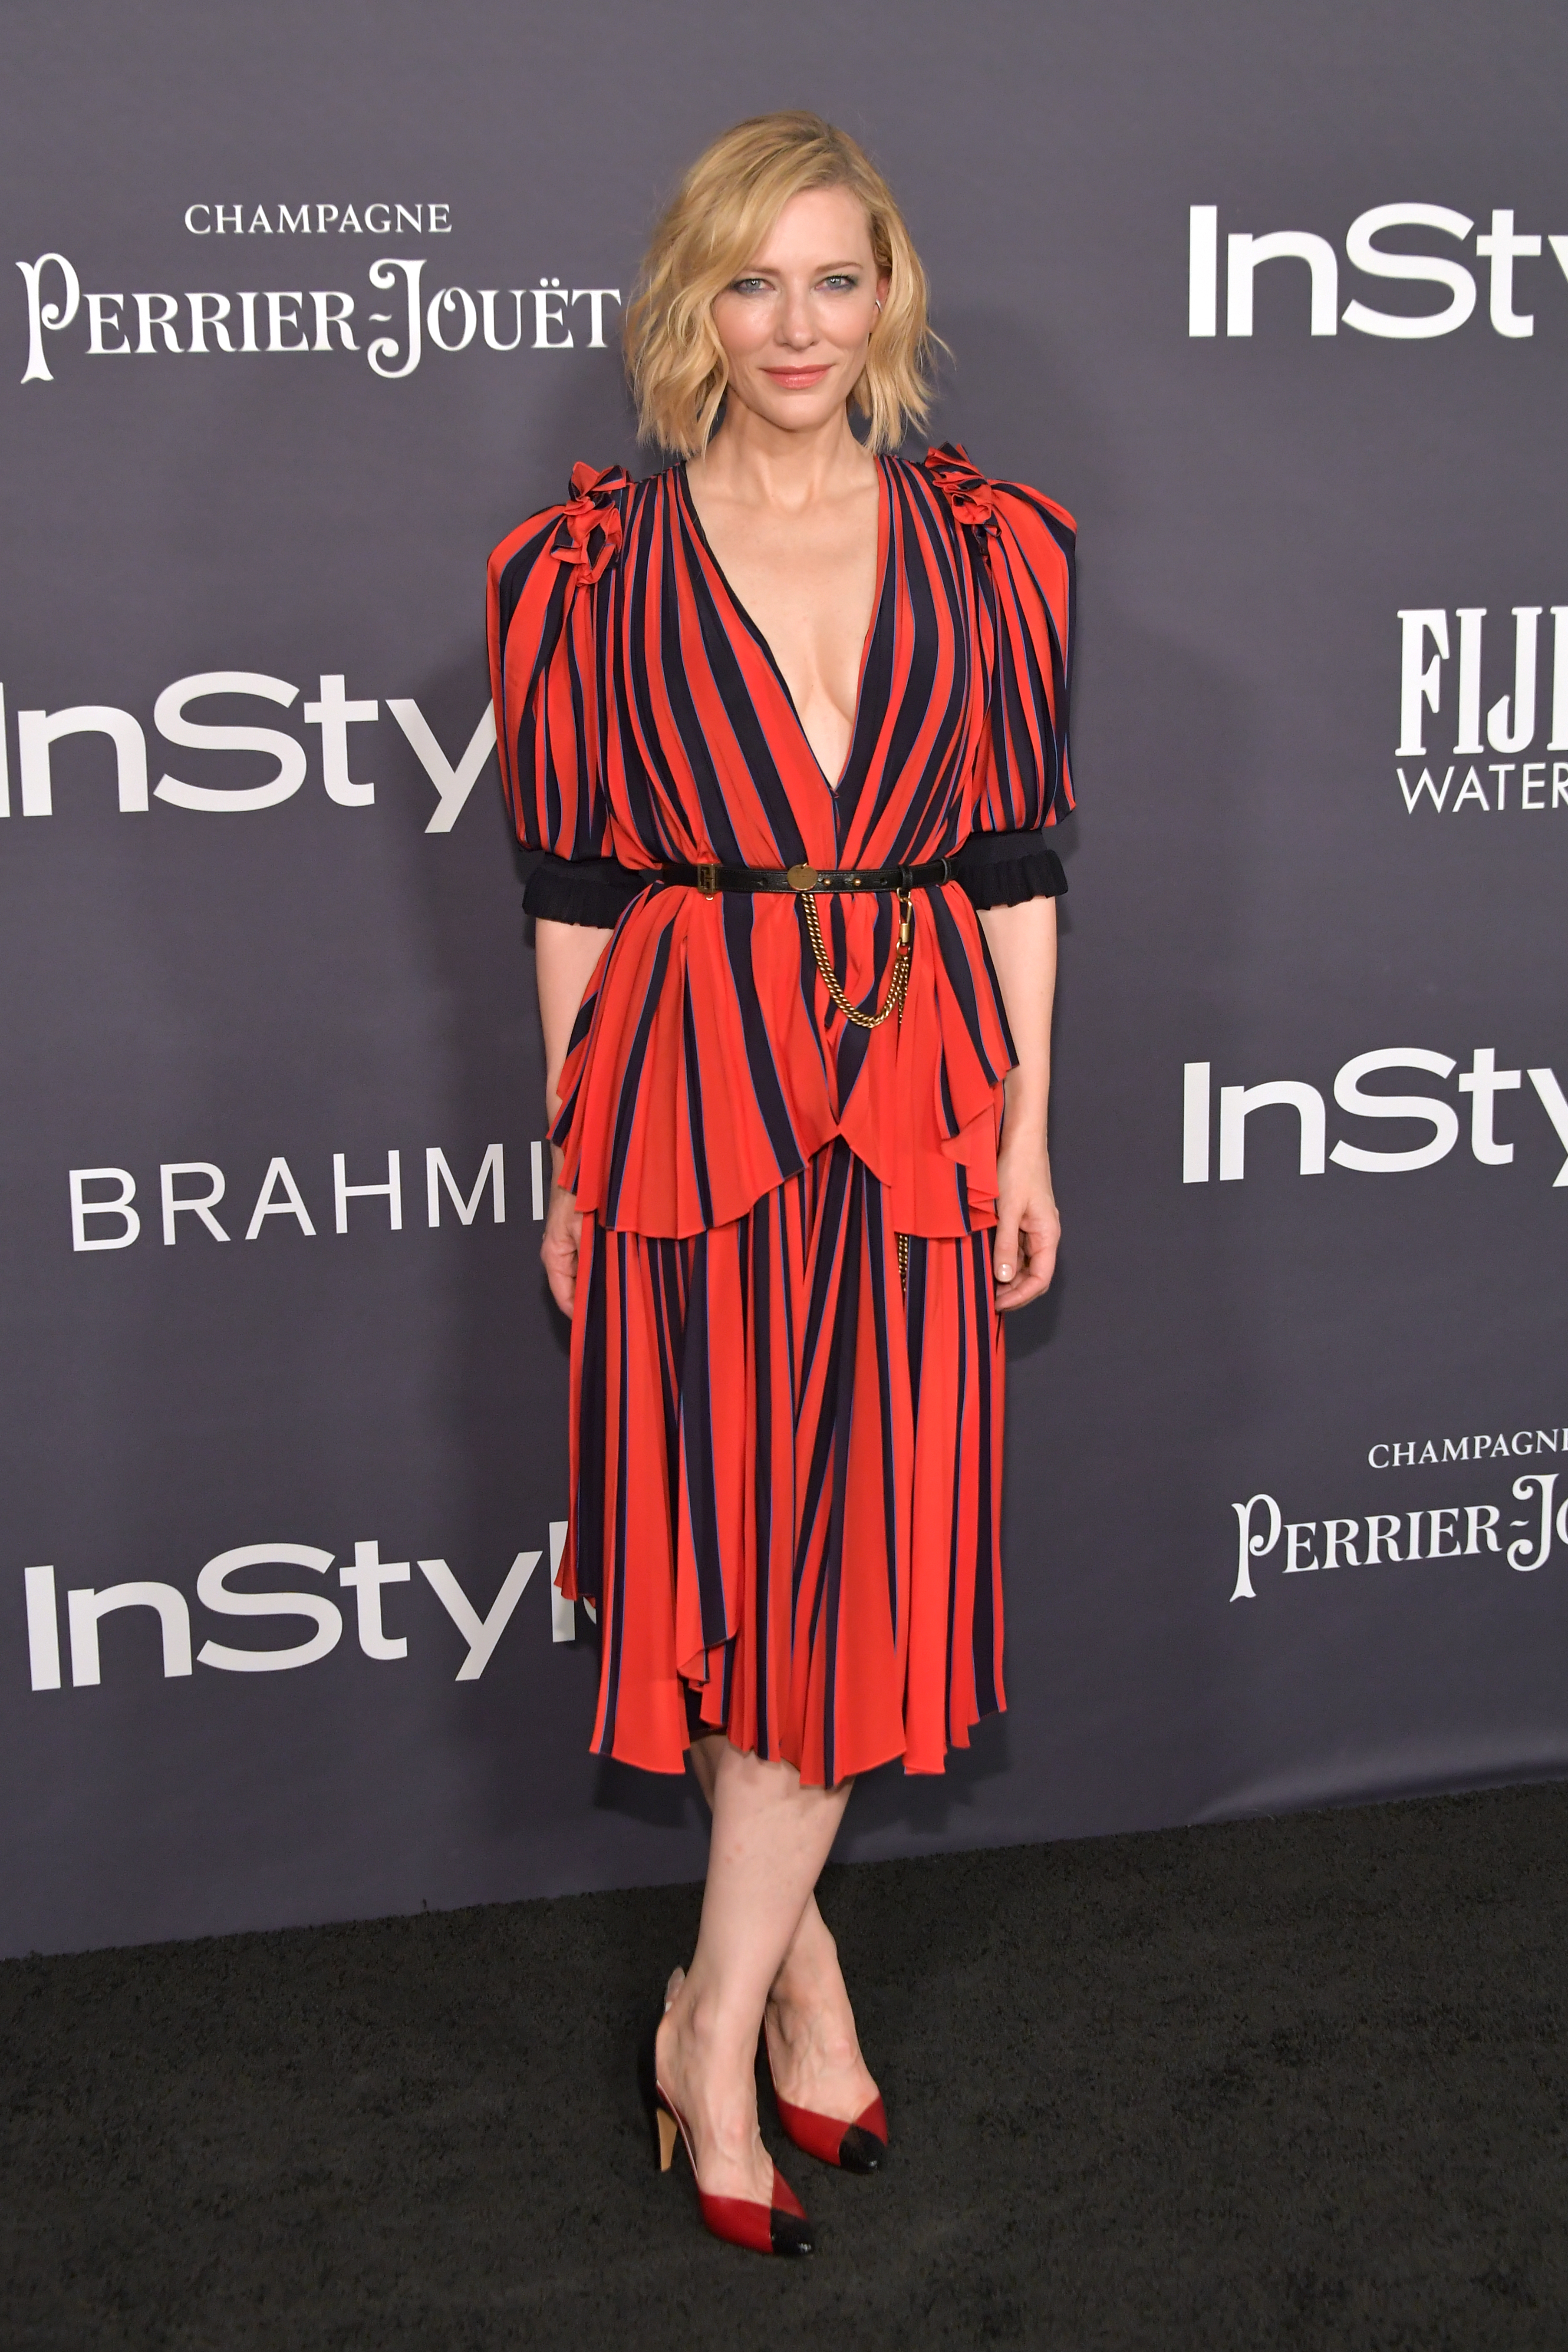 <p>From models and muses to actresses and politicians, Australia has no shortage of fashionable female trailblazers.</p> <p>Point in case, Academy award-winner Cate Blanchett who picked up the coveted InStyle Magazine ' Style Icon' award in October 2017.</p> <p>Blanchett isn't the only high-profile Australian women who has put her sartorial stamp on the fashion world.</p> <p>Nicole Kidman, Margot Robbie and MP Julie Bishop are some of the other high-profile names  proved that Australian women and style status go together.</p> <p> Click through to see our pick of ten of Australia's most fashionable ladies.</p>